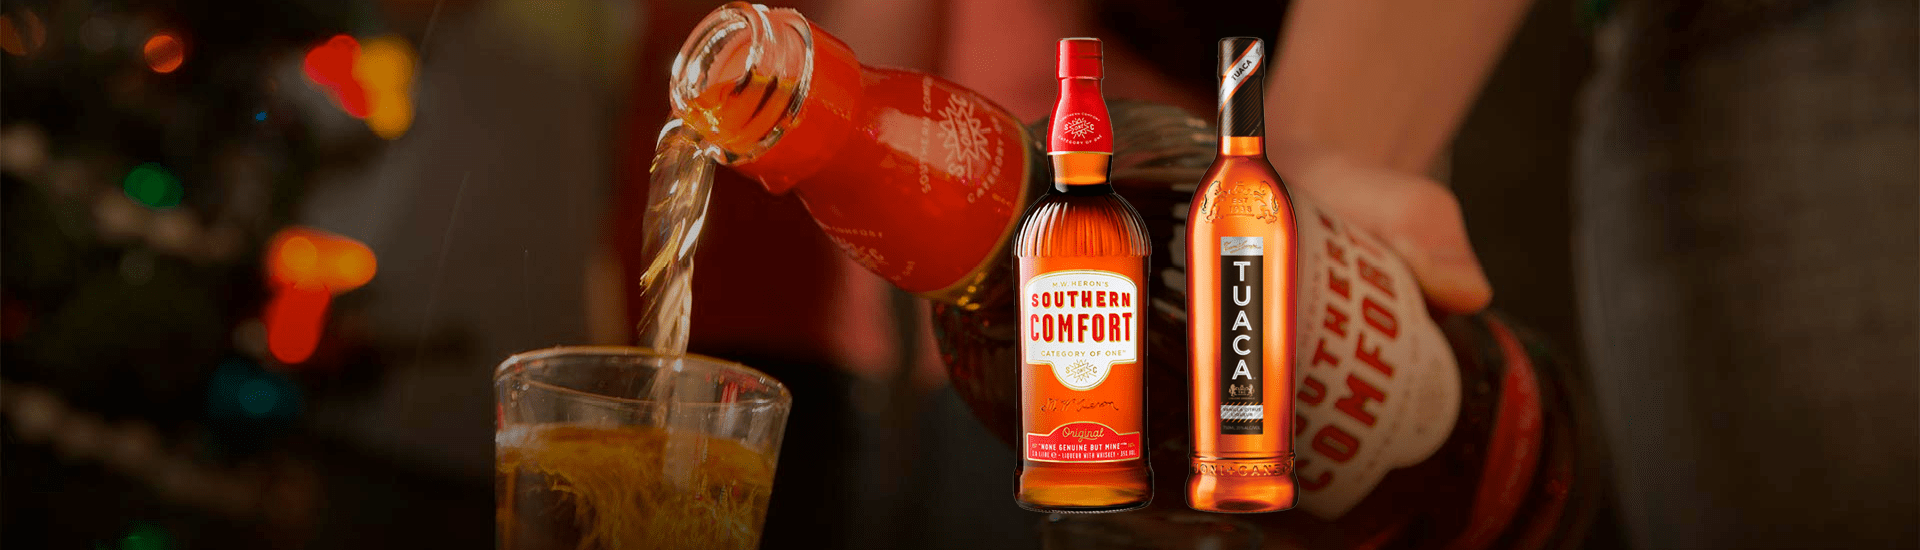 Hi-Spirits to distribute Southern Comfort and Tuaca in the UK